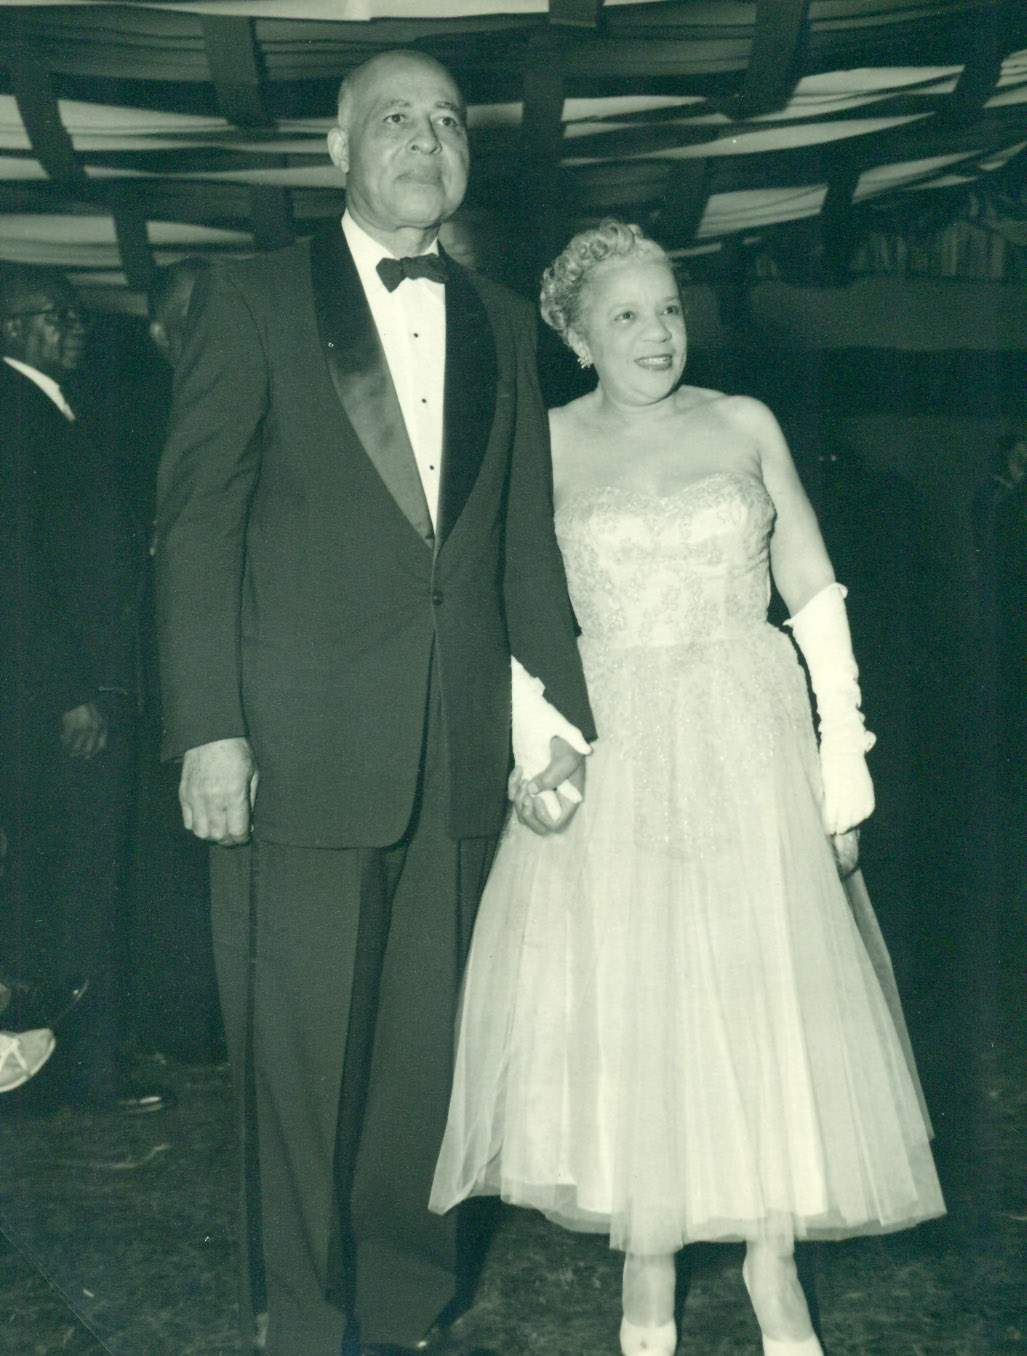 Shanklin's architect John C. Norman, Sr. and his wife Ruth Norman